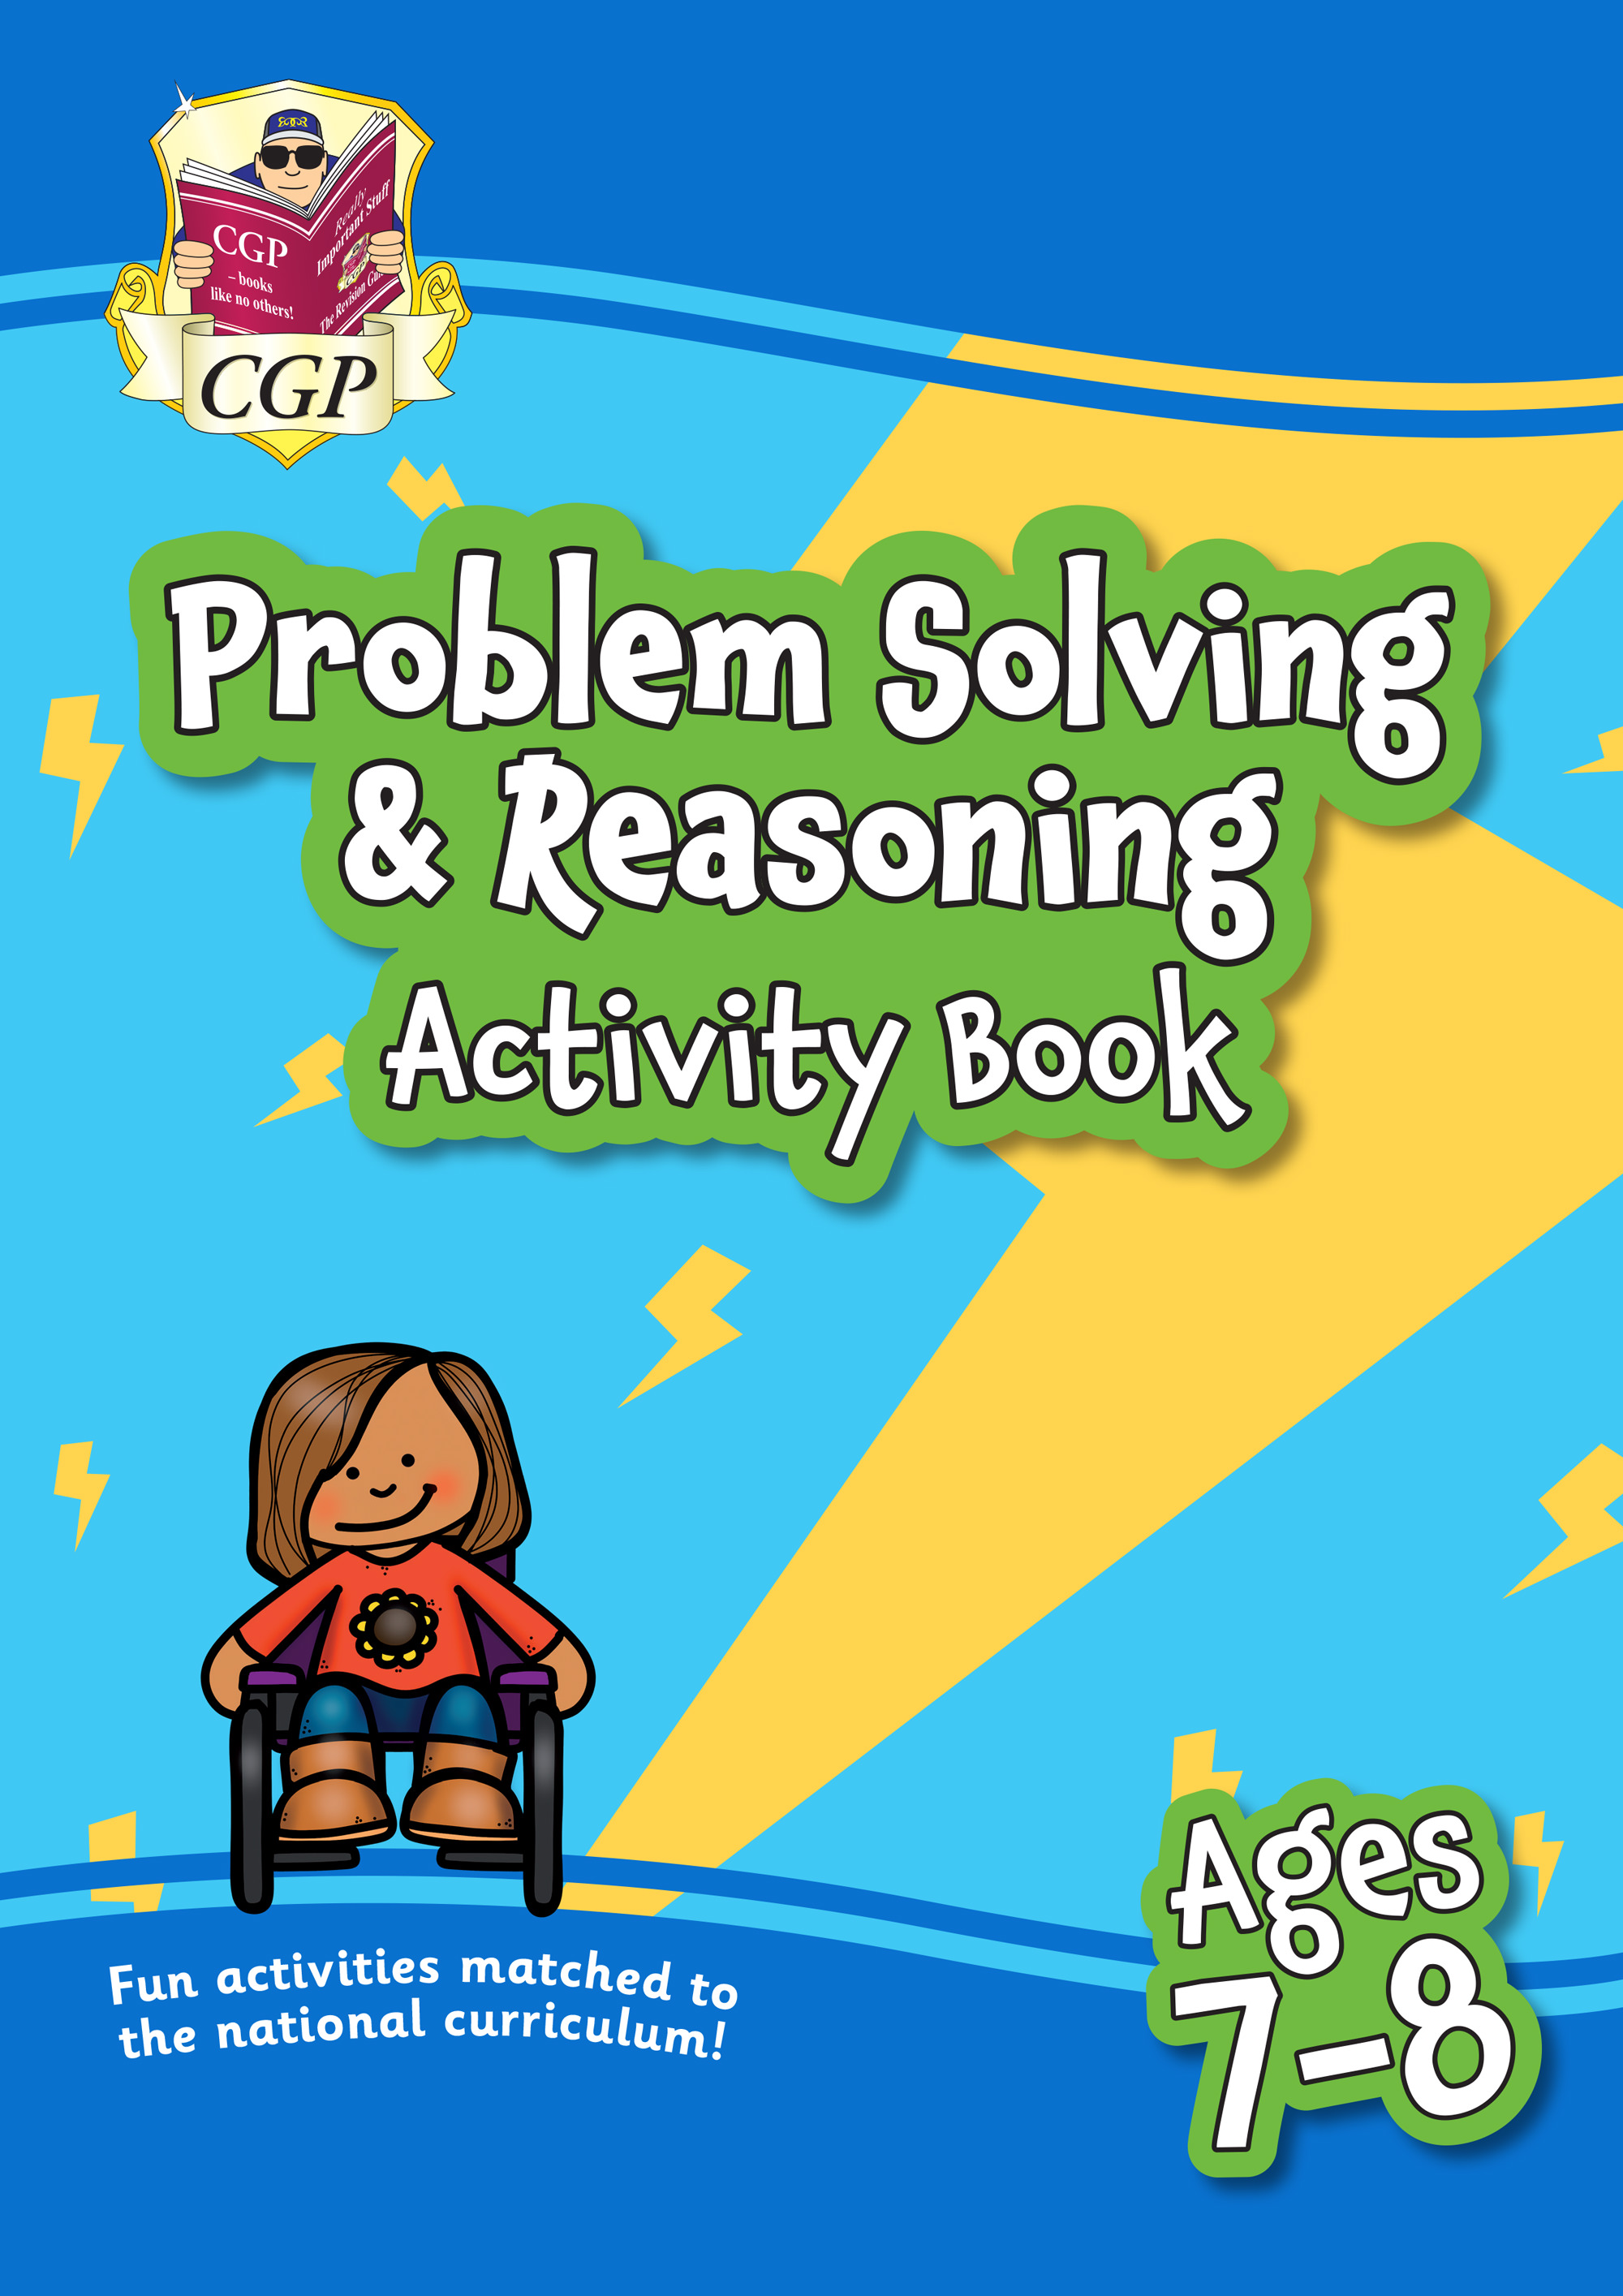 MPFPS3Q21 - New Problem Solving & Reasoning Maths Activity Book for Ages 7-8: perfect for home learn